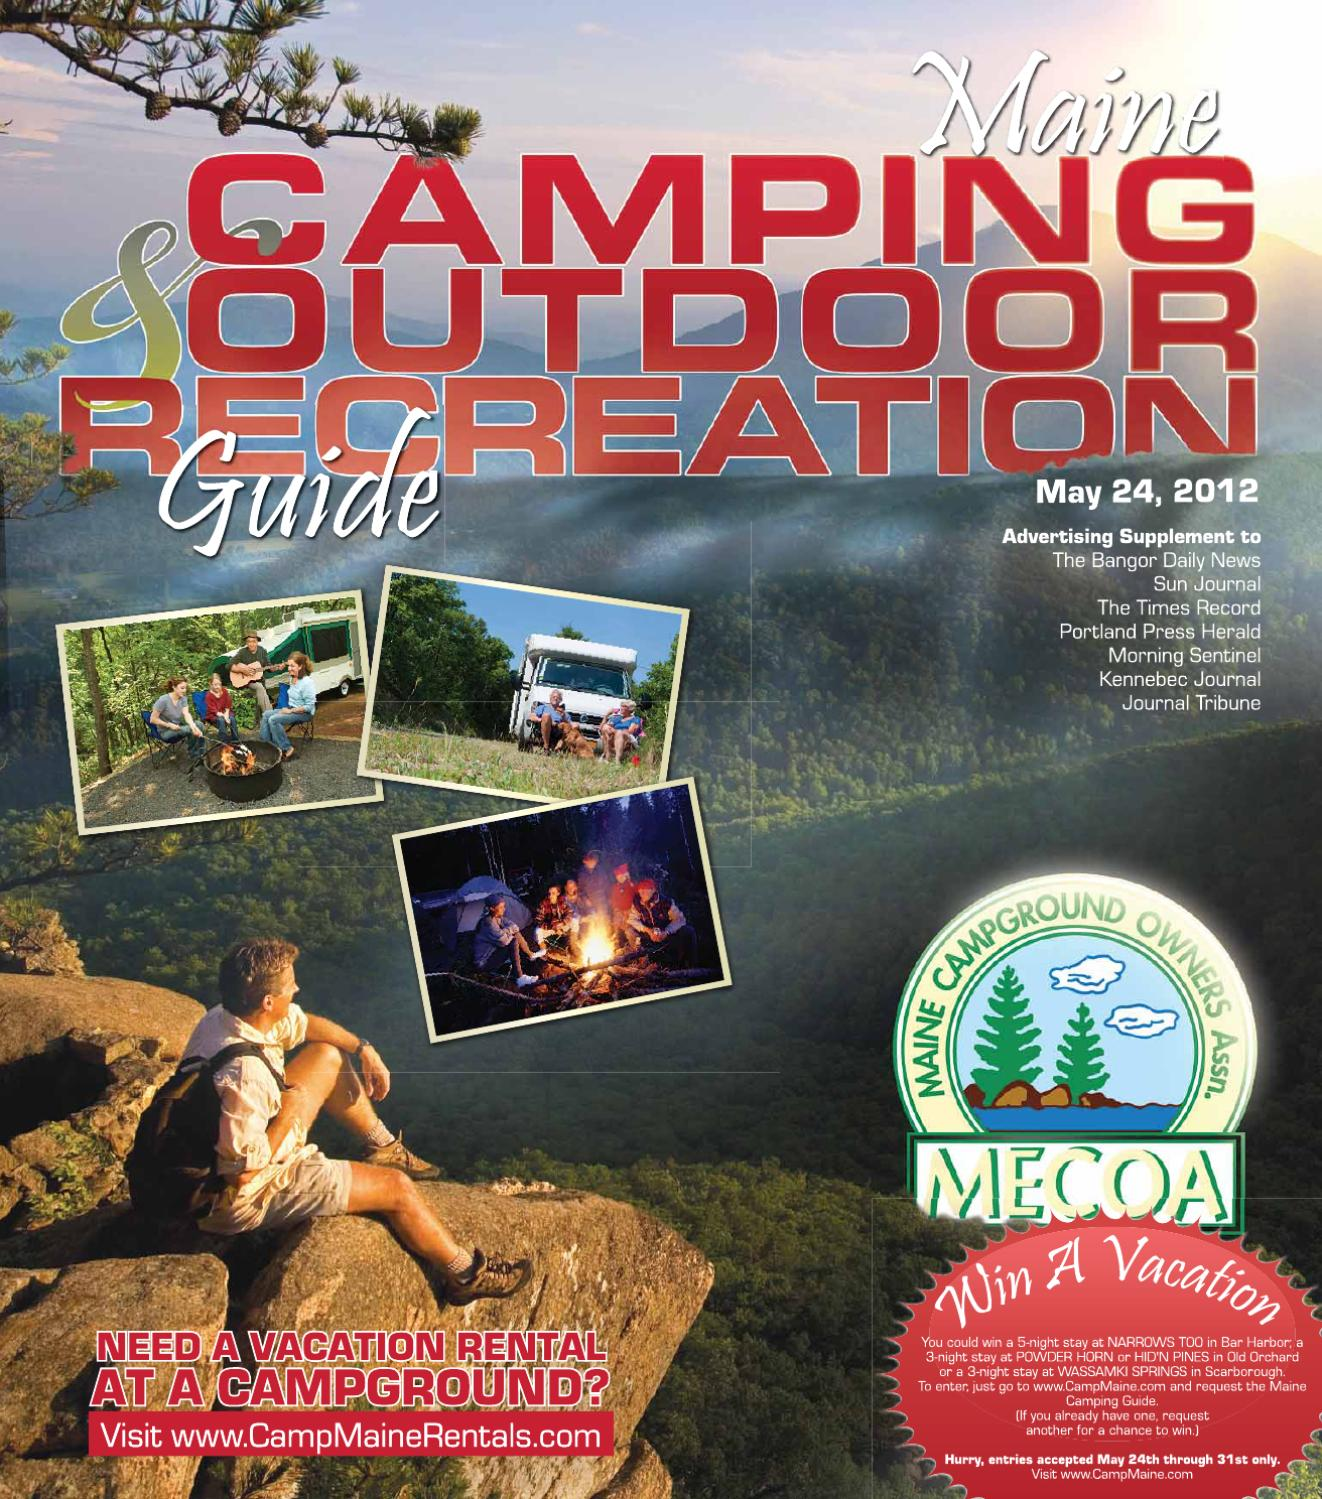 Cottages amp campground rentals riverview cottages campground jackman - Cottages Amp Campground Rentals Riverview Cottages Campground Jackman 27